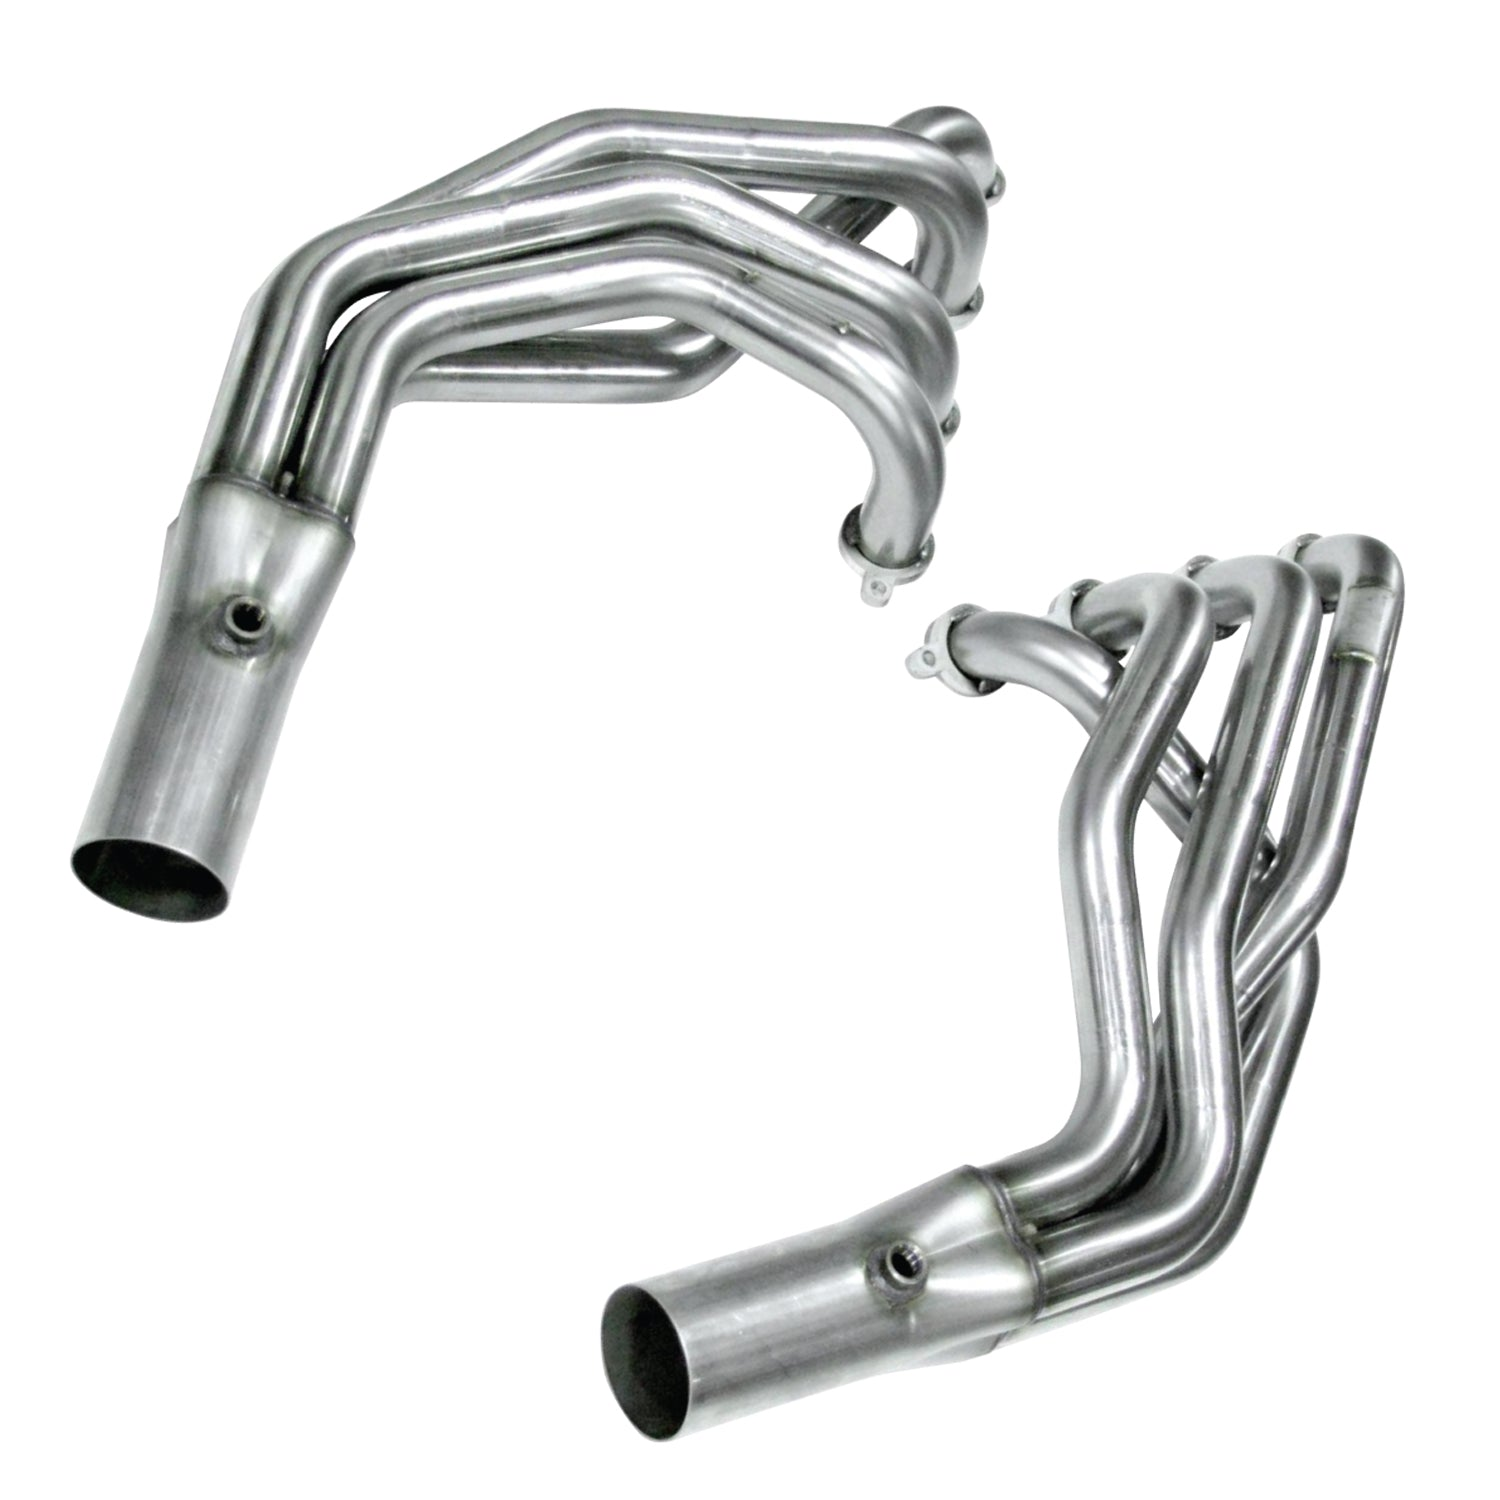 "1979-1993 Ford Mustang LSX 1 3/4"" x 3"" Swap Header"